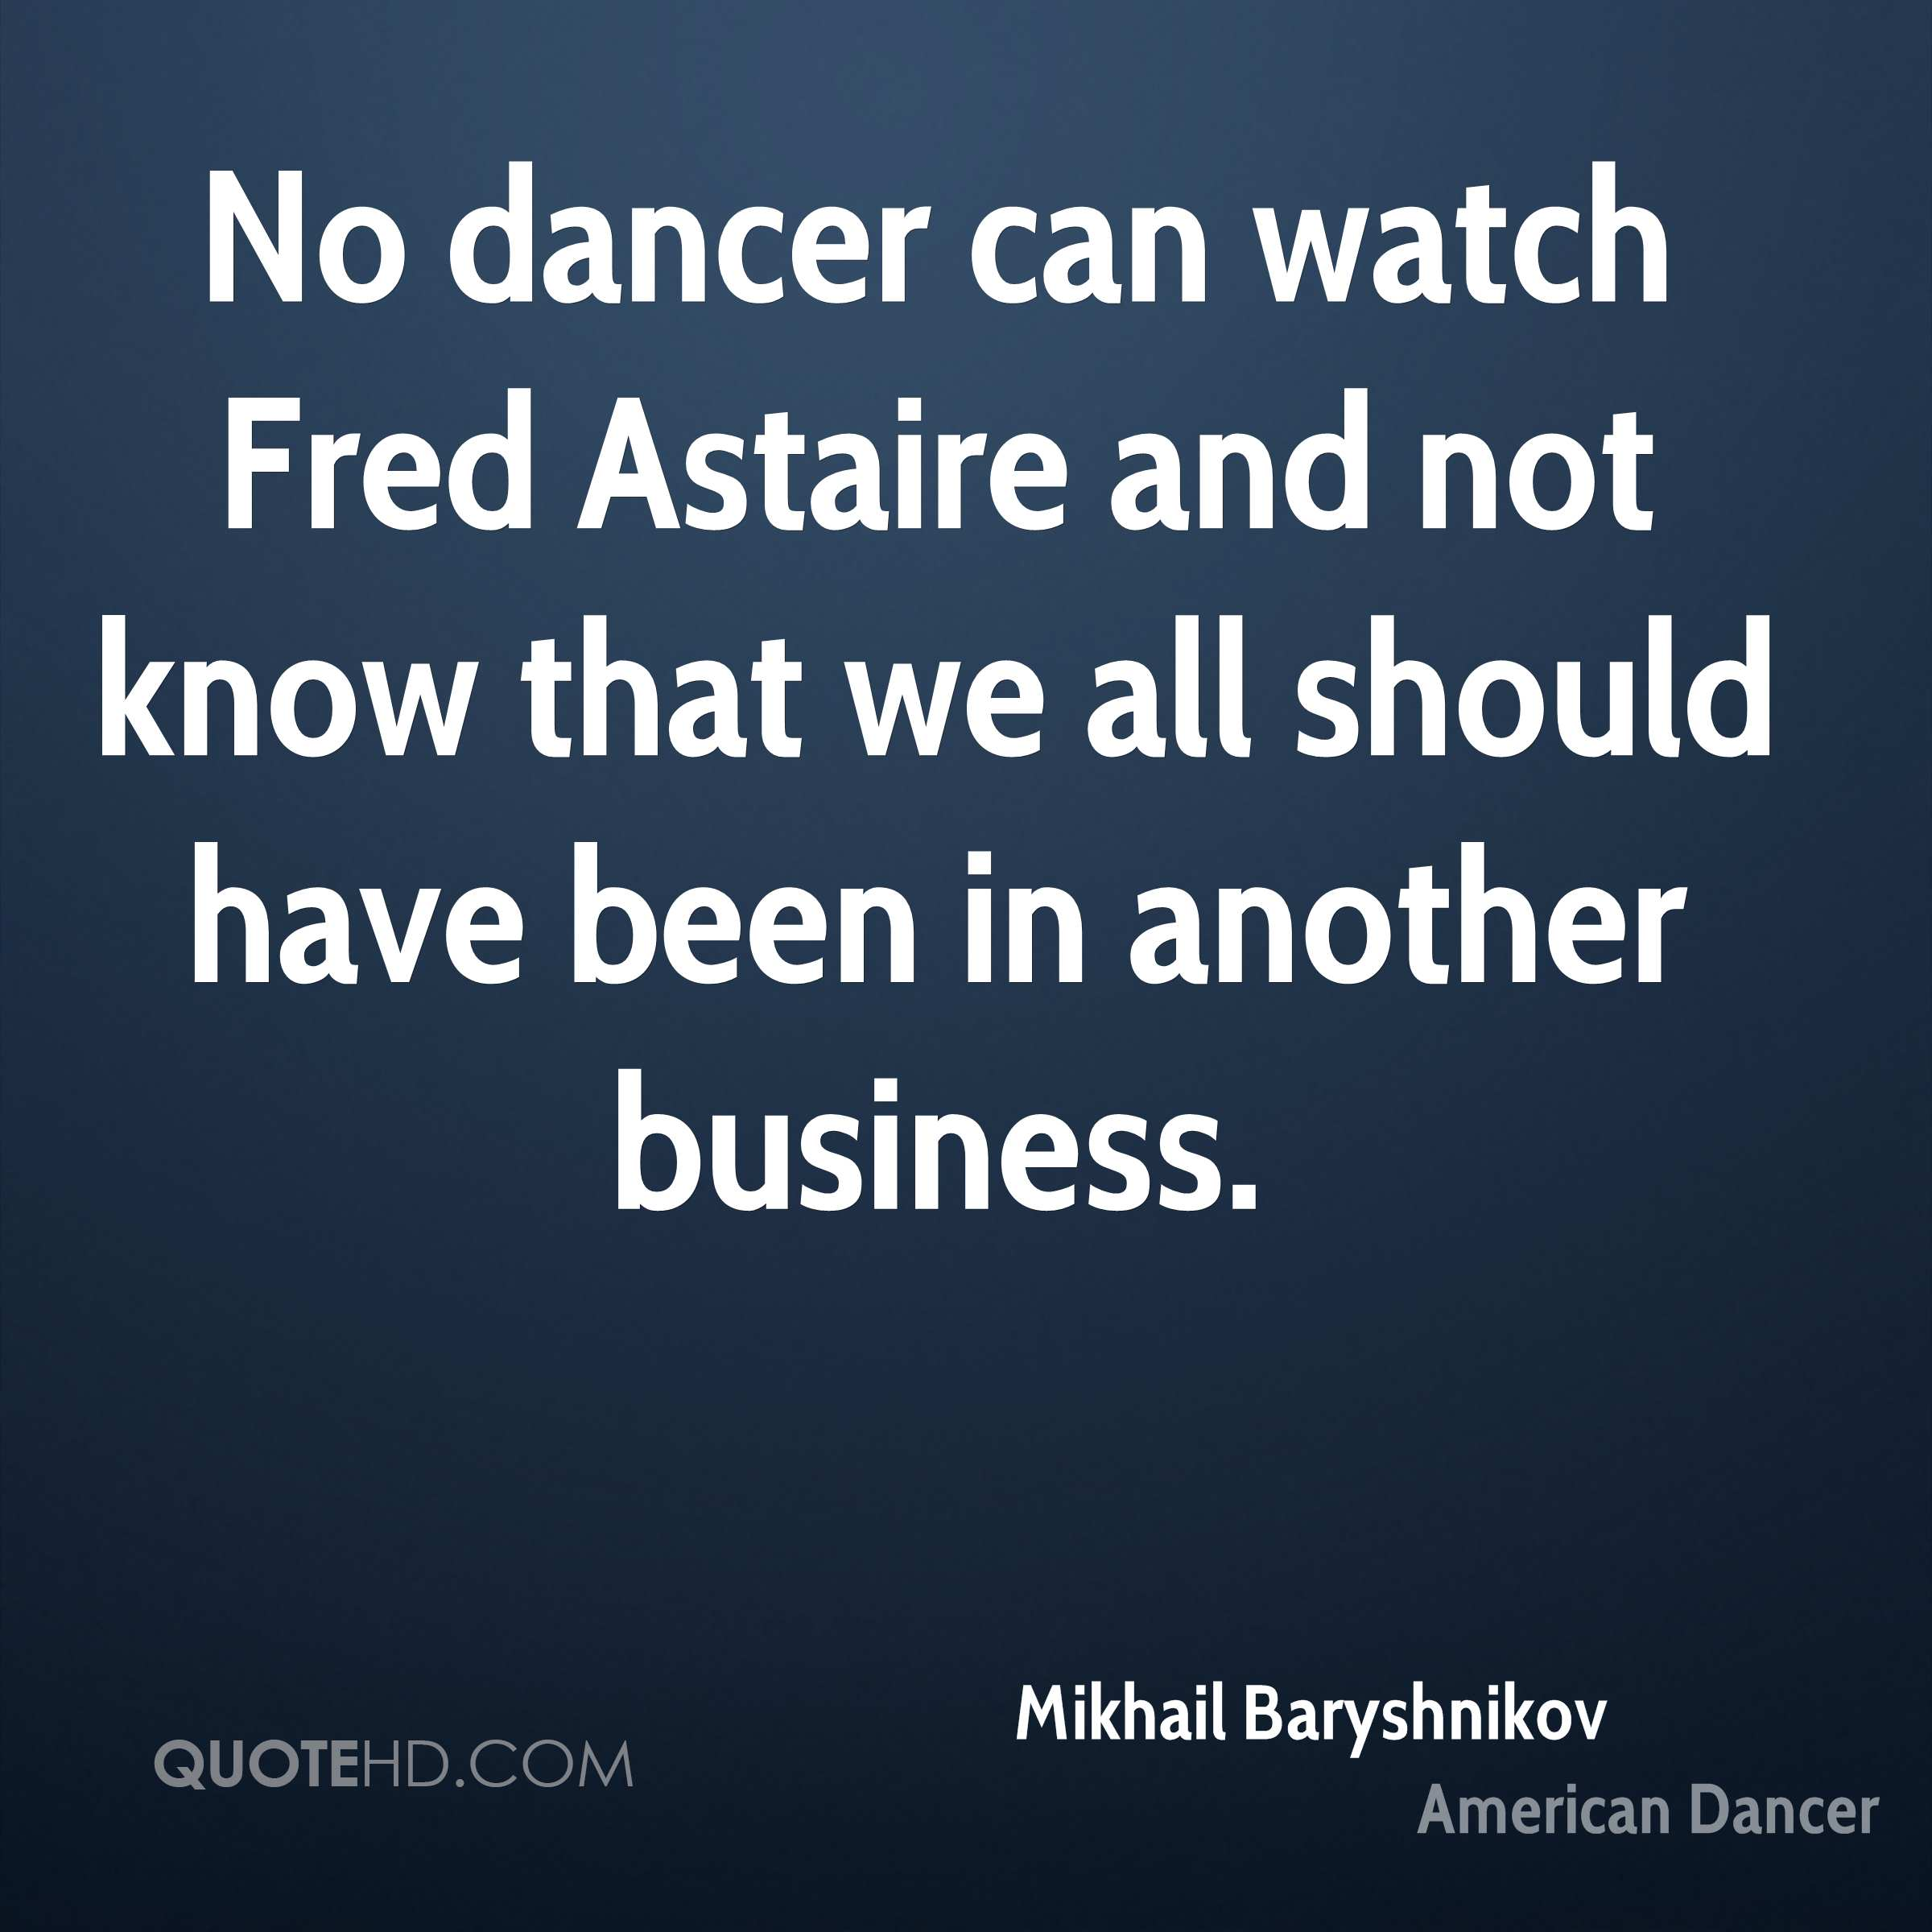 No dancer can watch Fred Astaire and not know that we all should have been in another business.